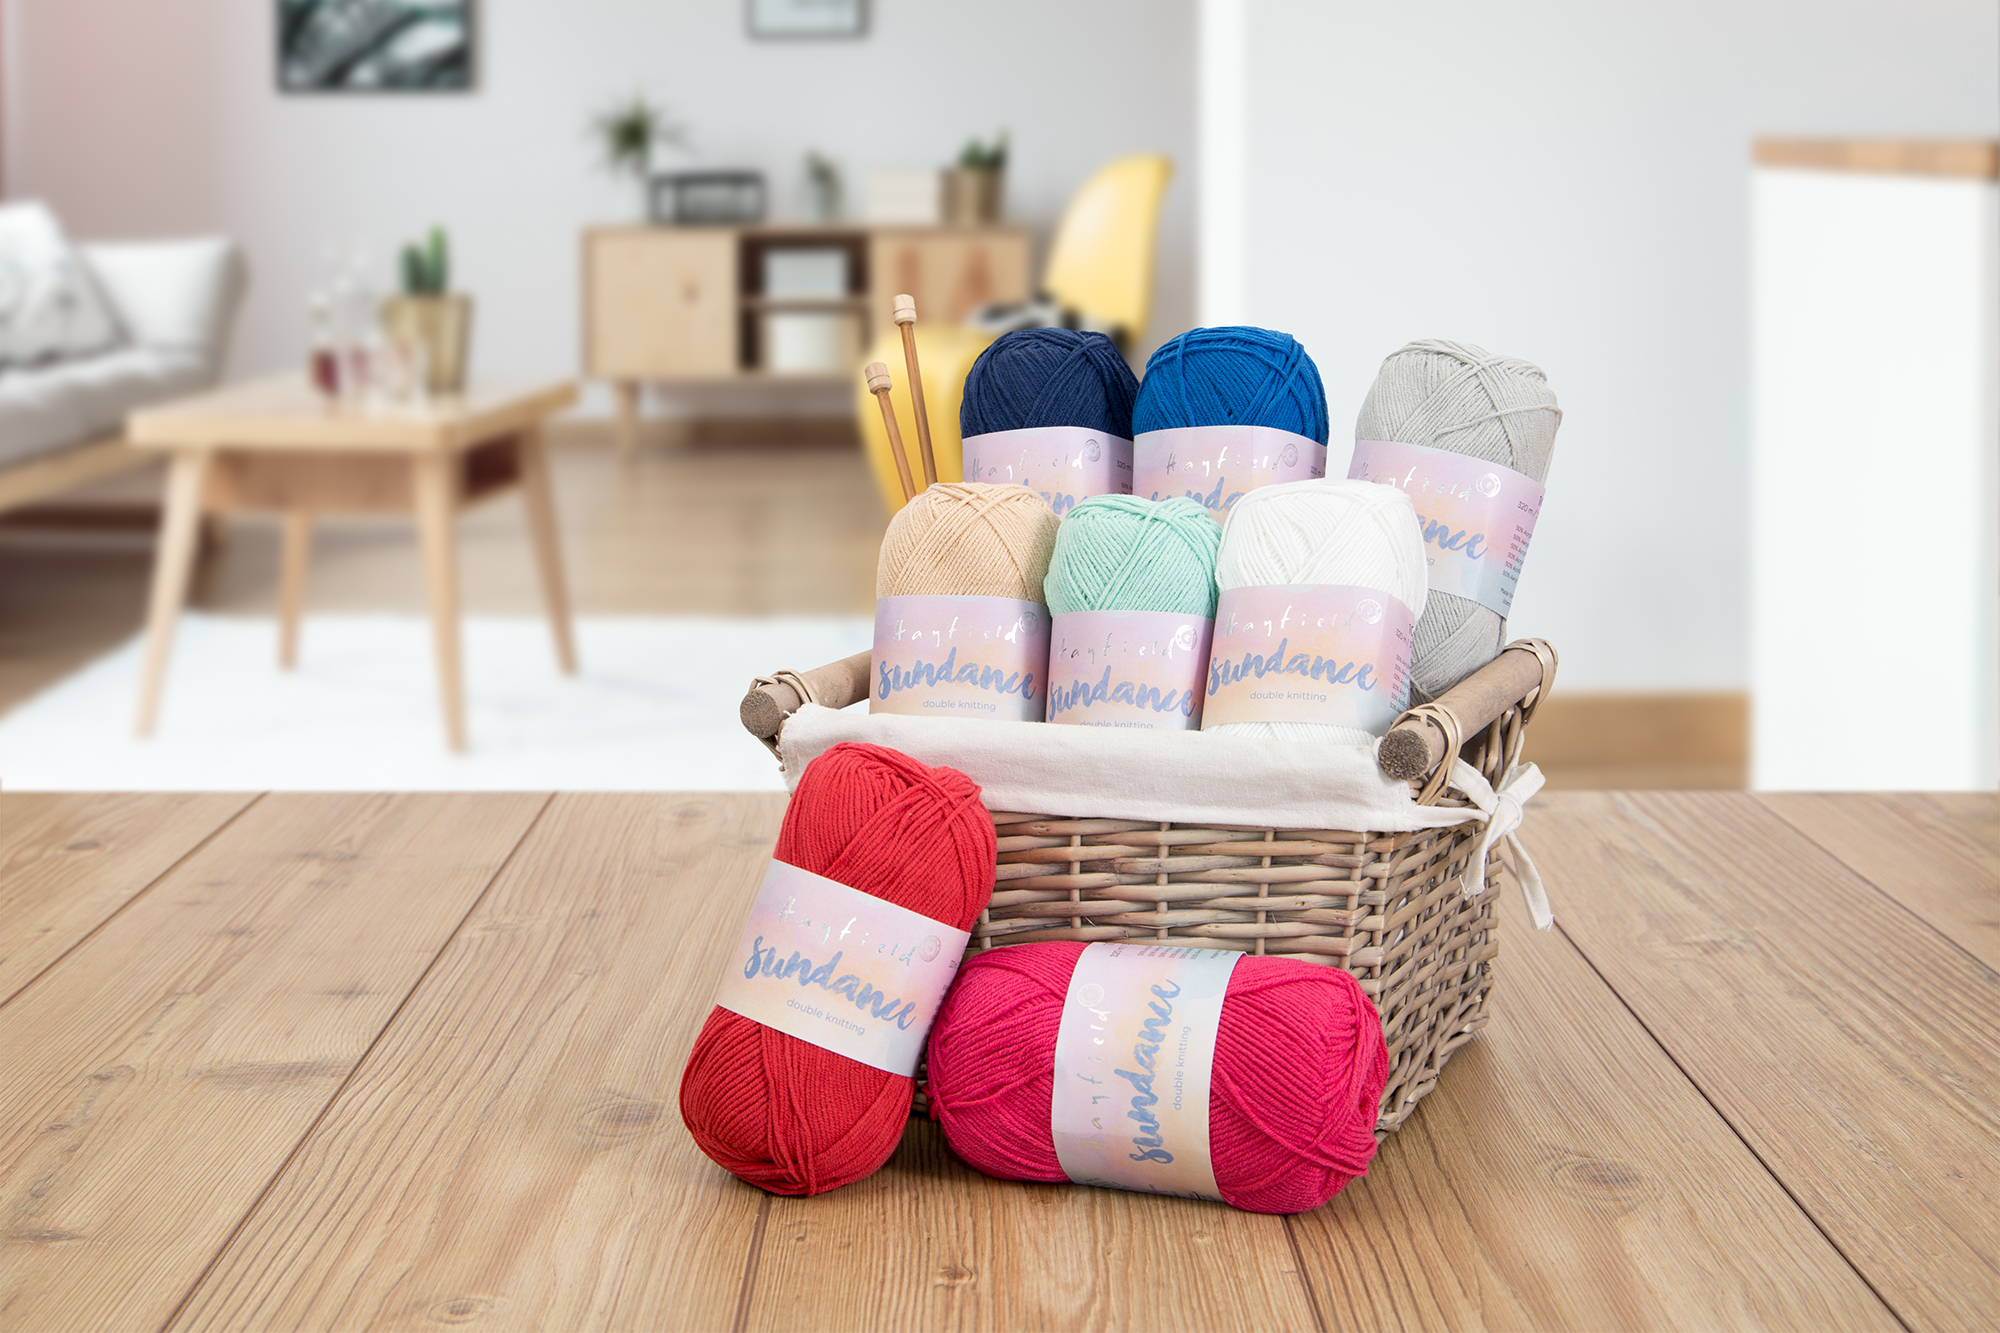 How To Purchase Quality Yarn For Good Attire?